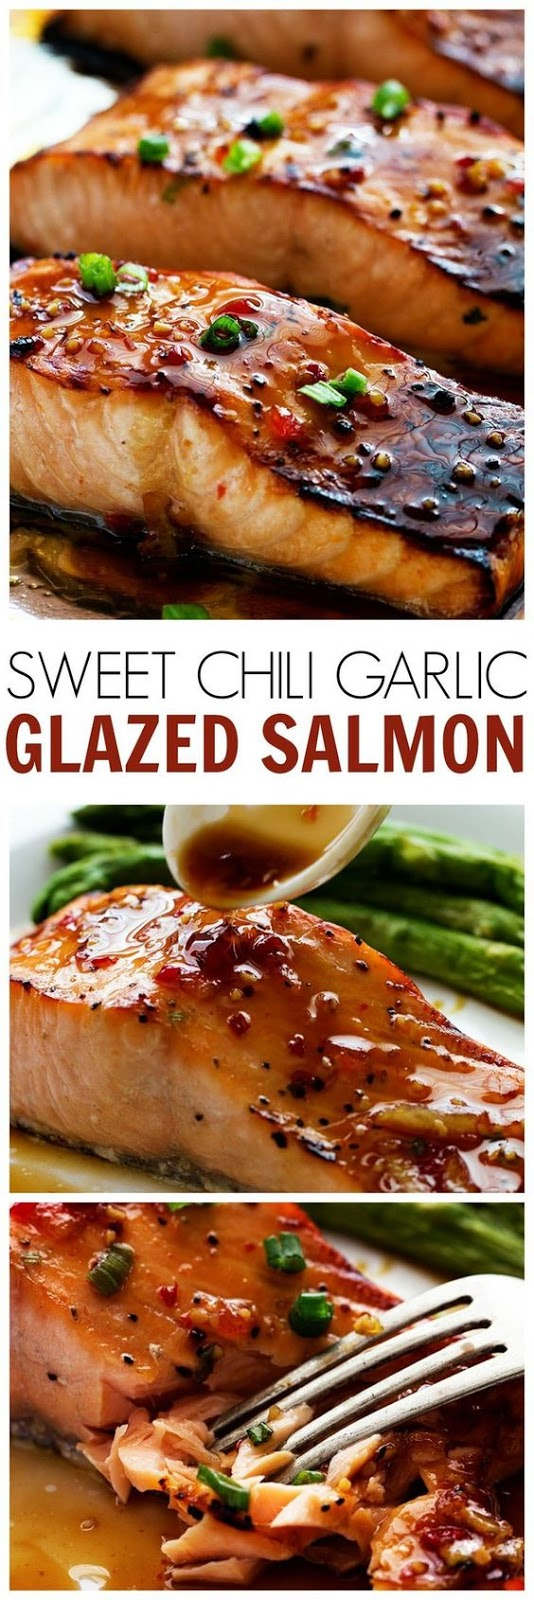 The Best Sweet Chili Garlic Glazed Salmon